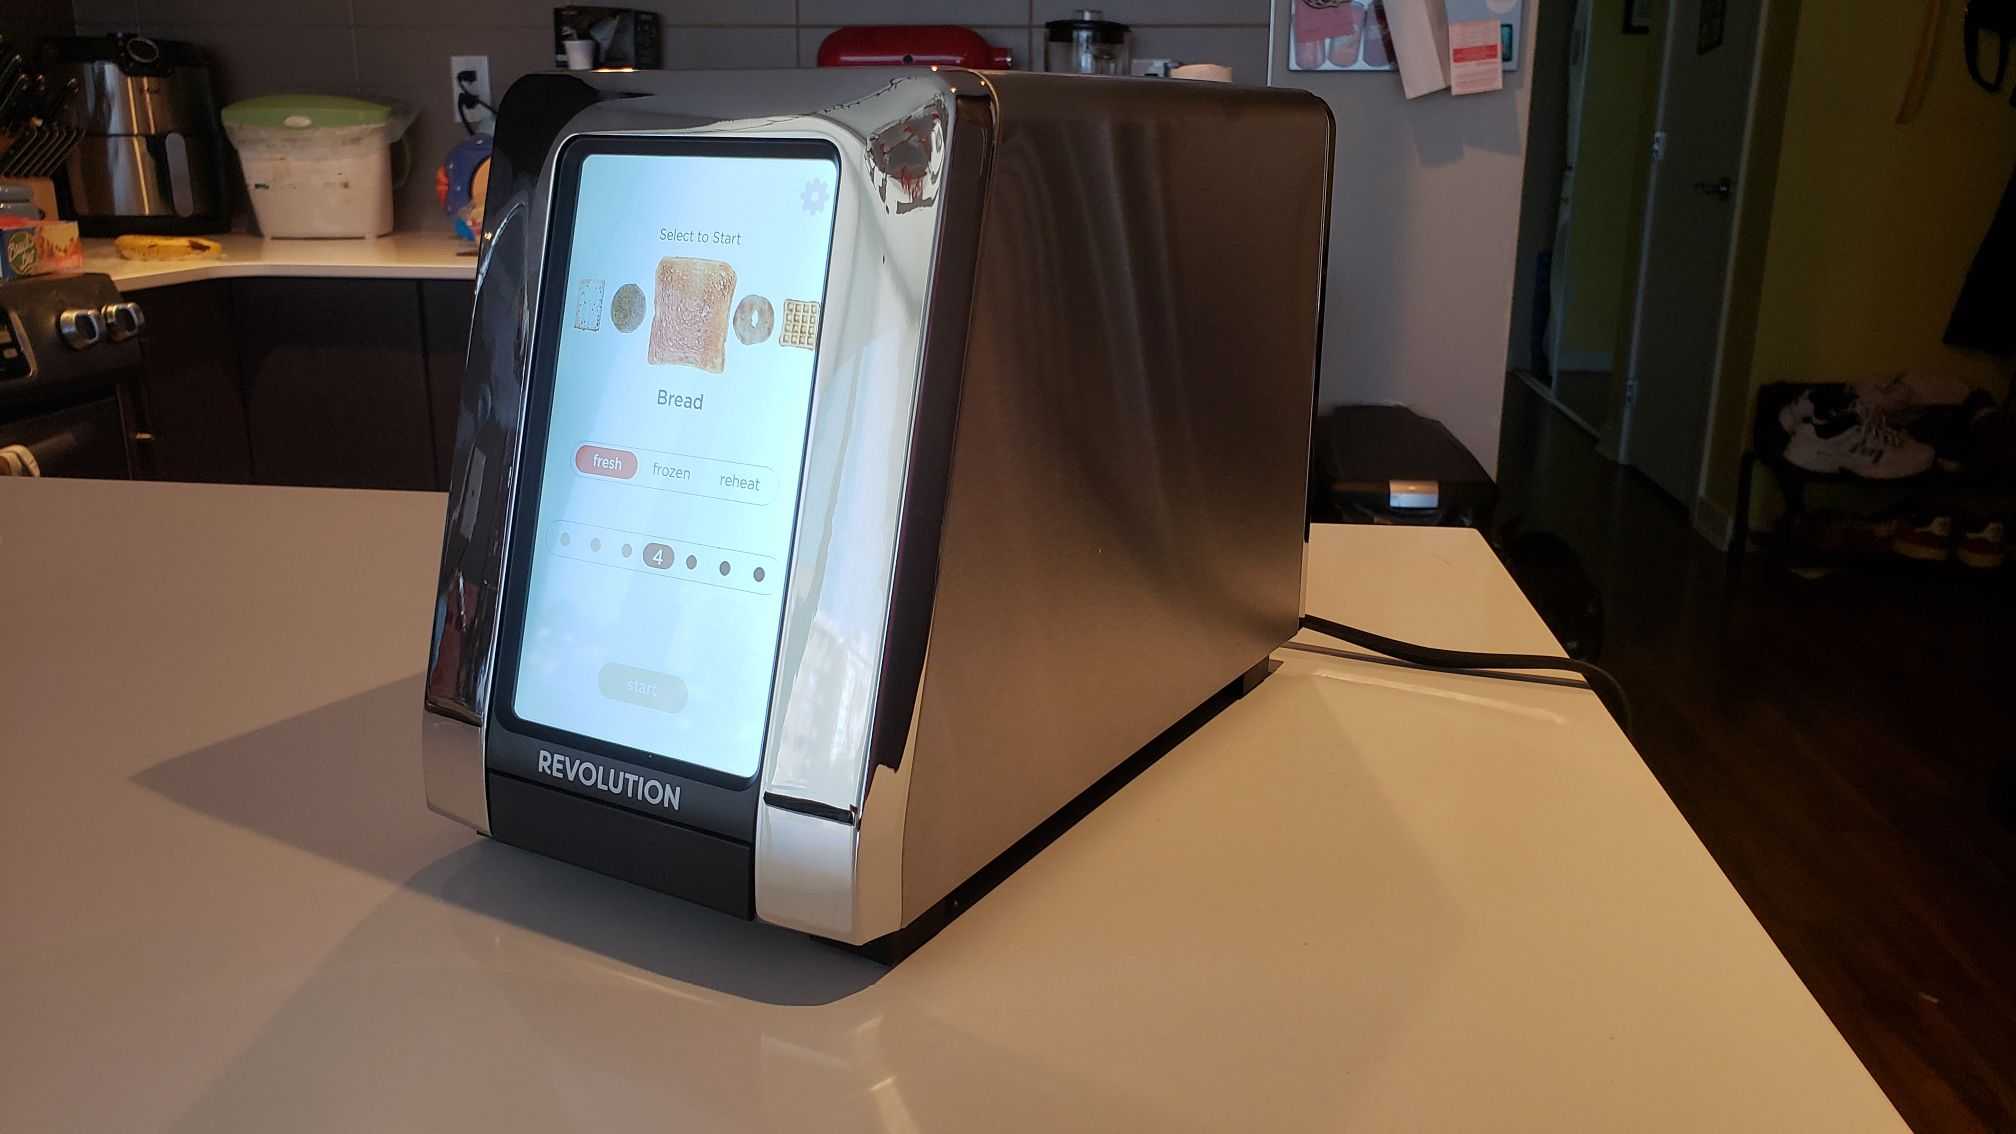 Revolution Toaster with touchscreen on